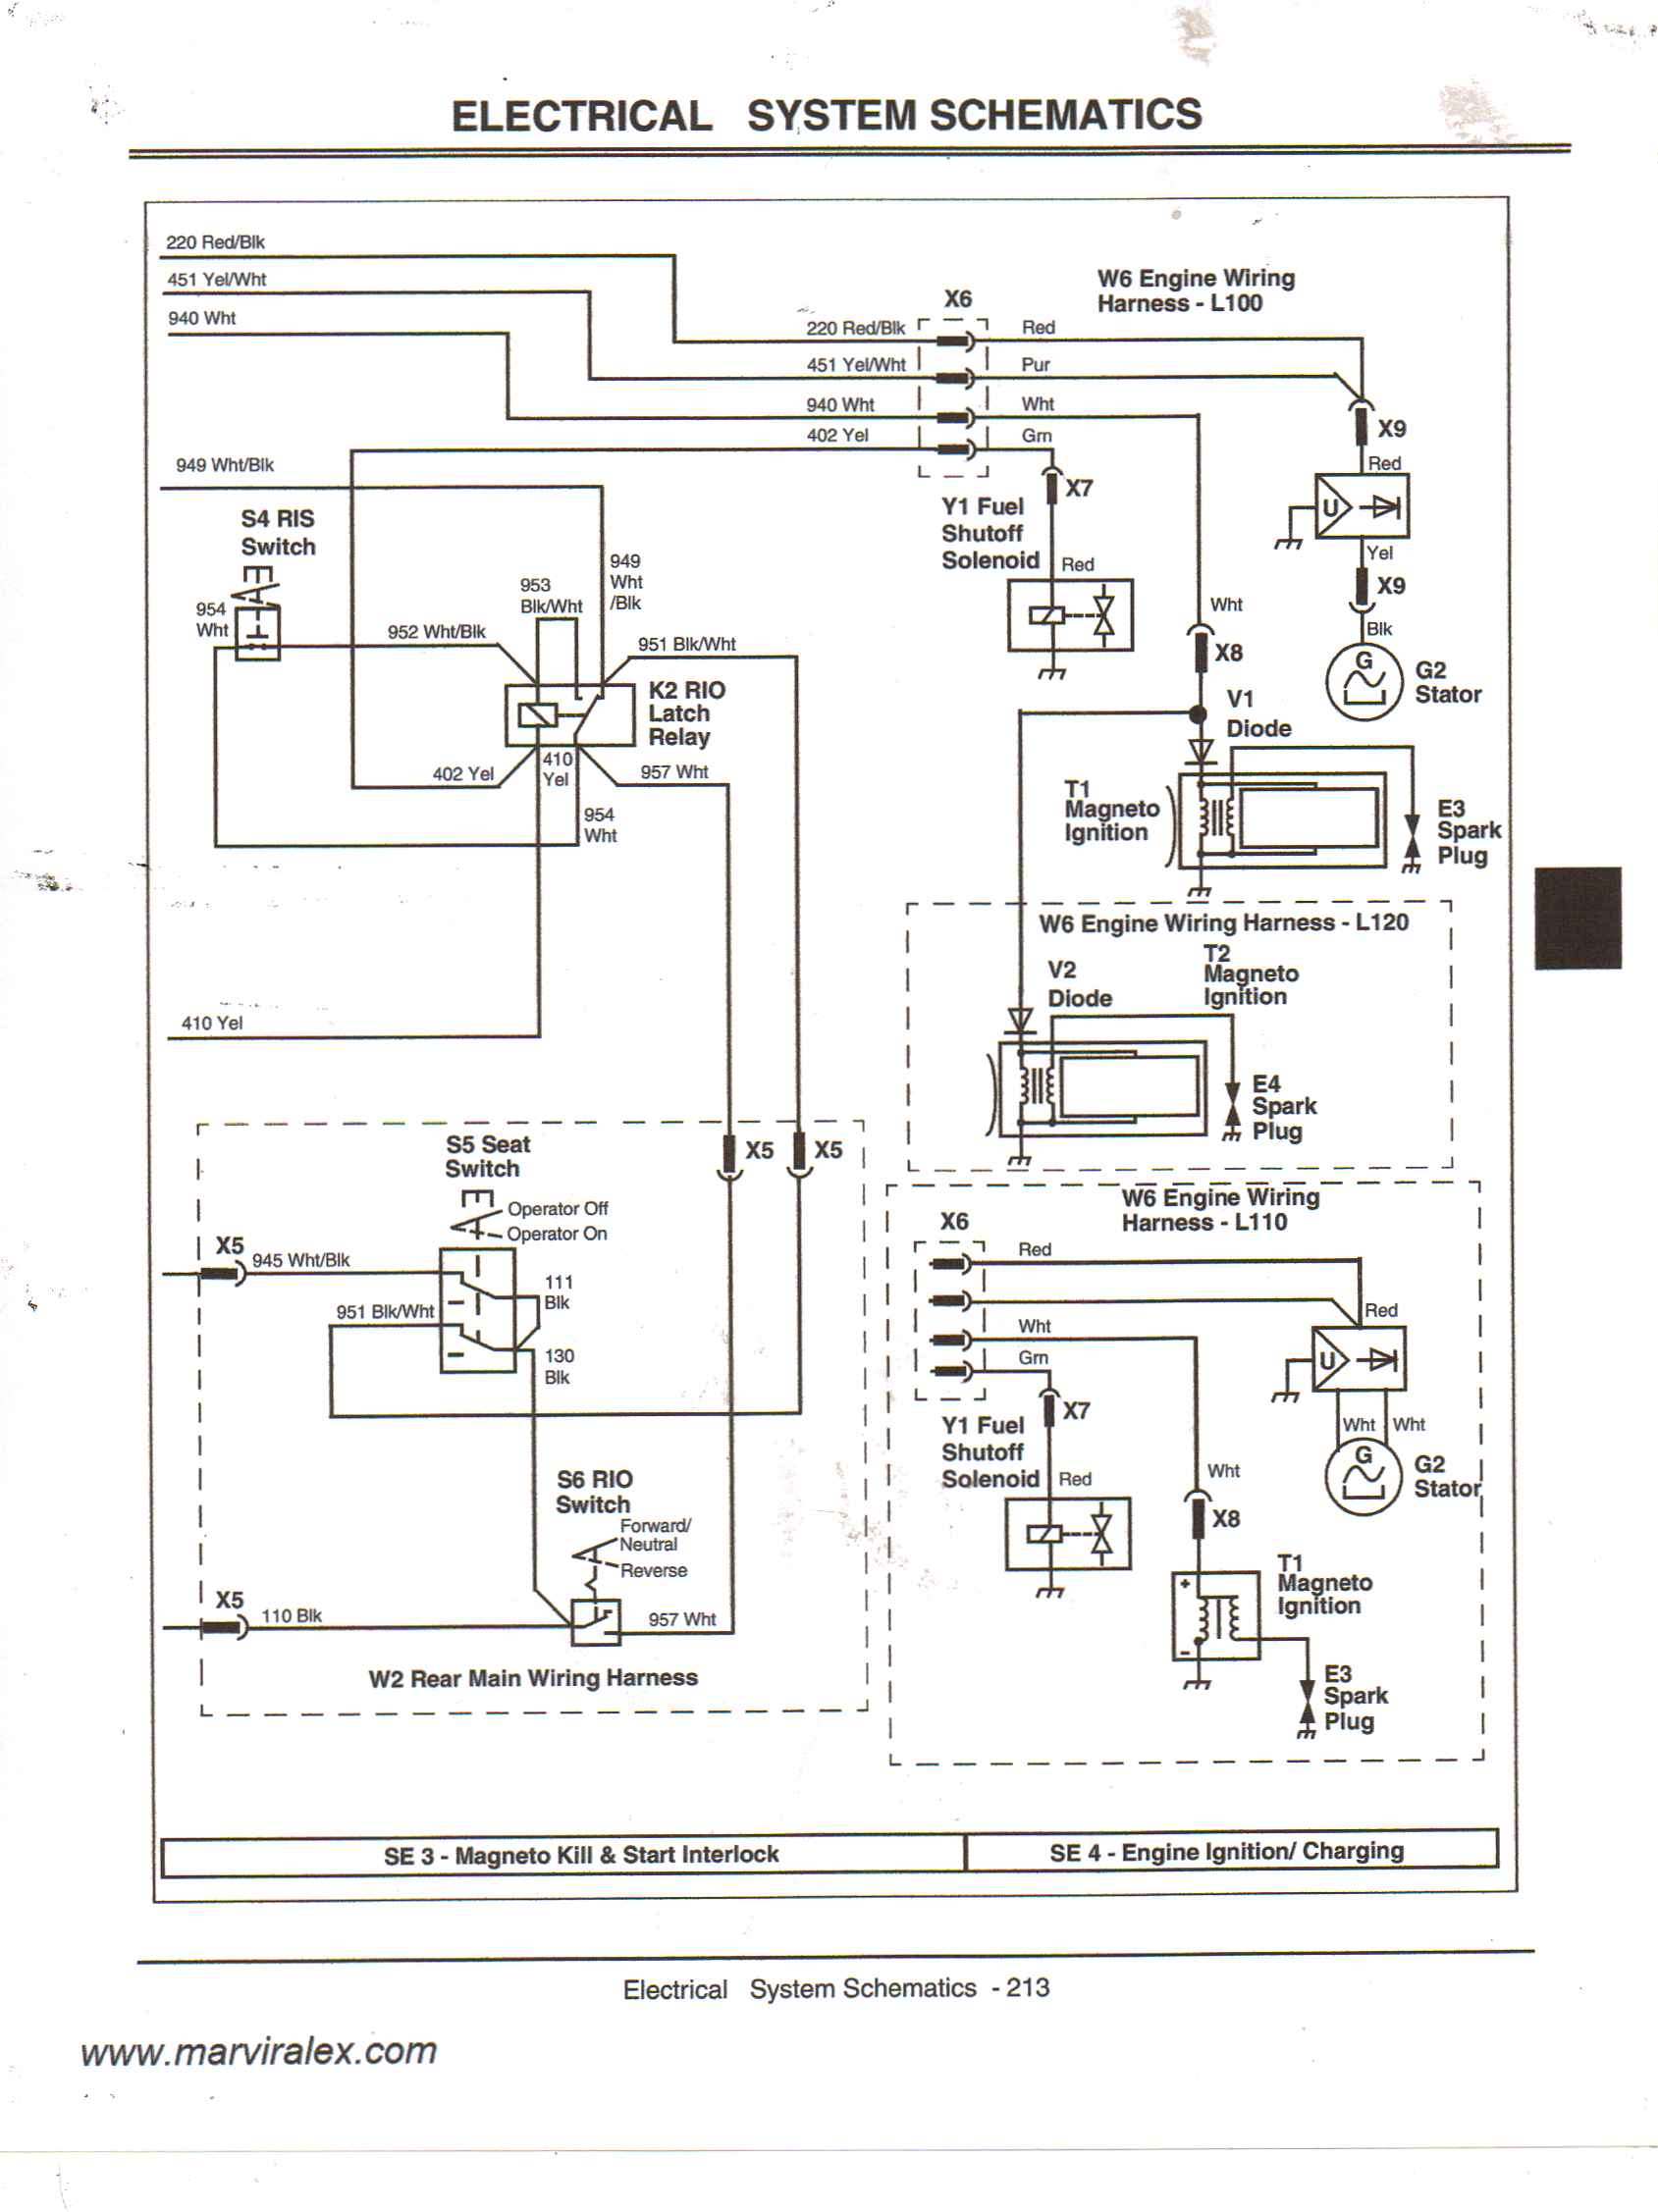 1974 ct90 k4 wiring diagram wiring diagram specialties